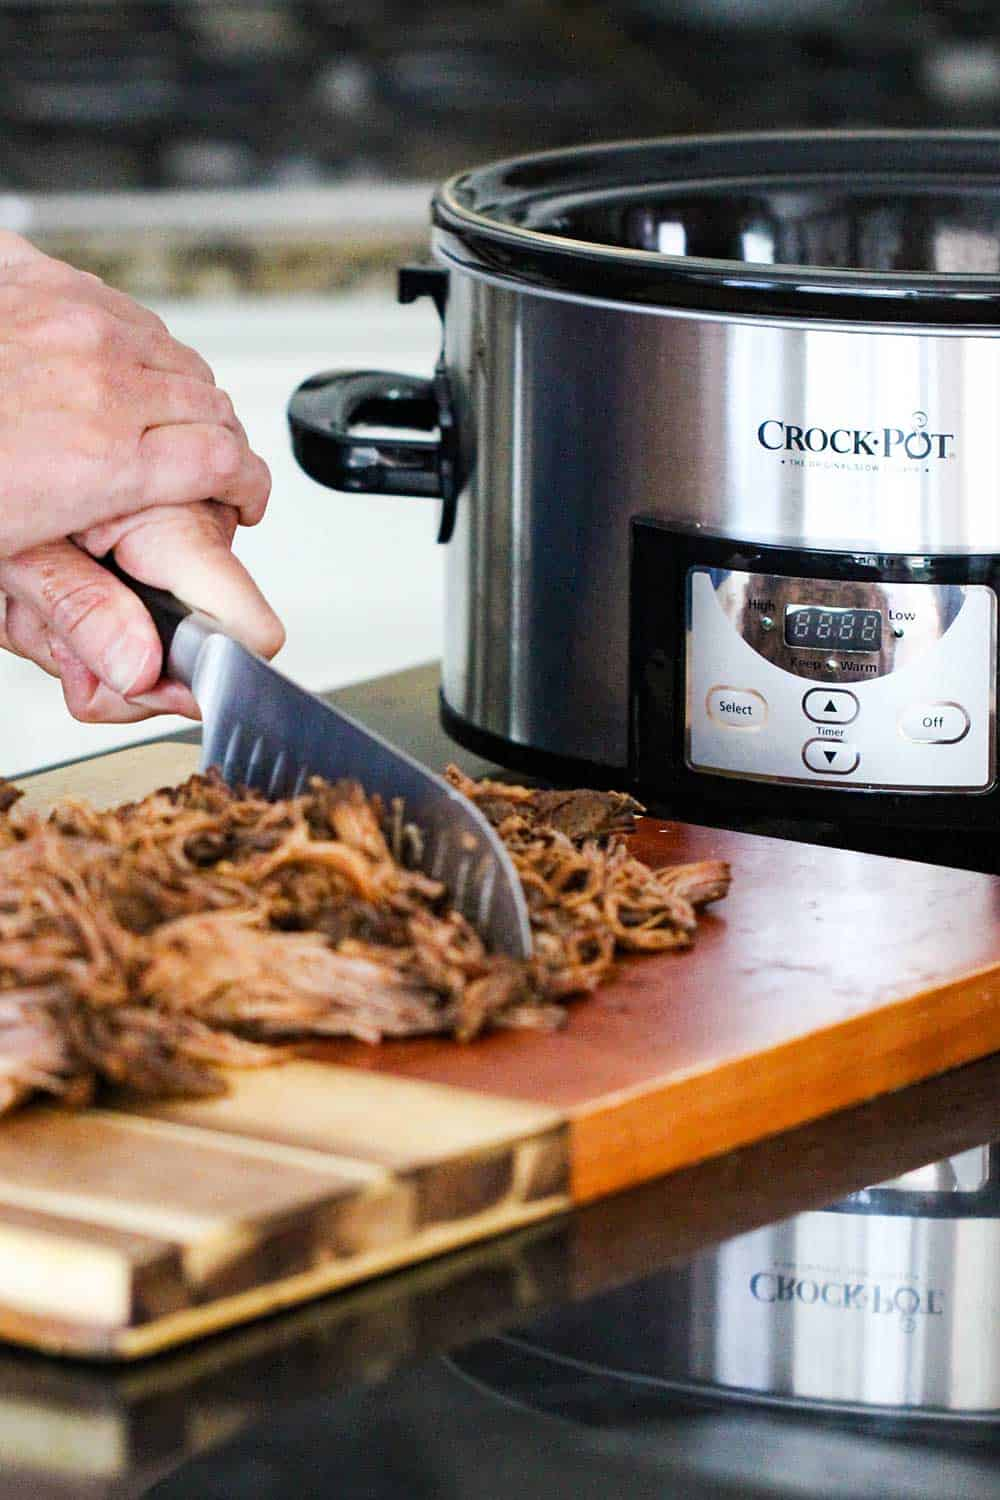 A large knife cutting cooked BBQ brisket next to a silver Crock-Pot.